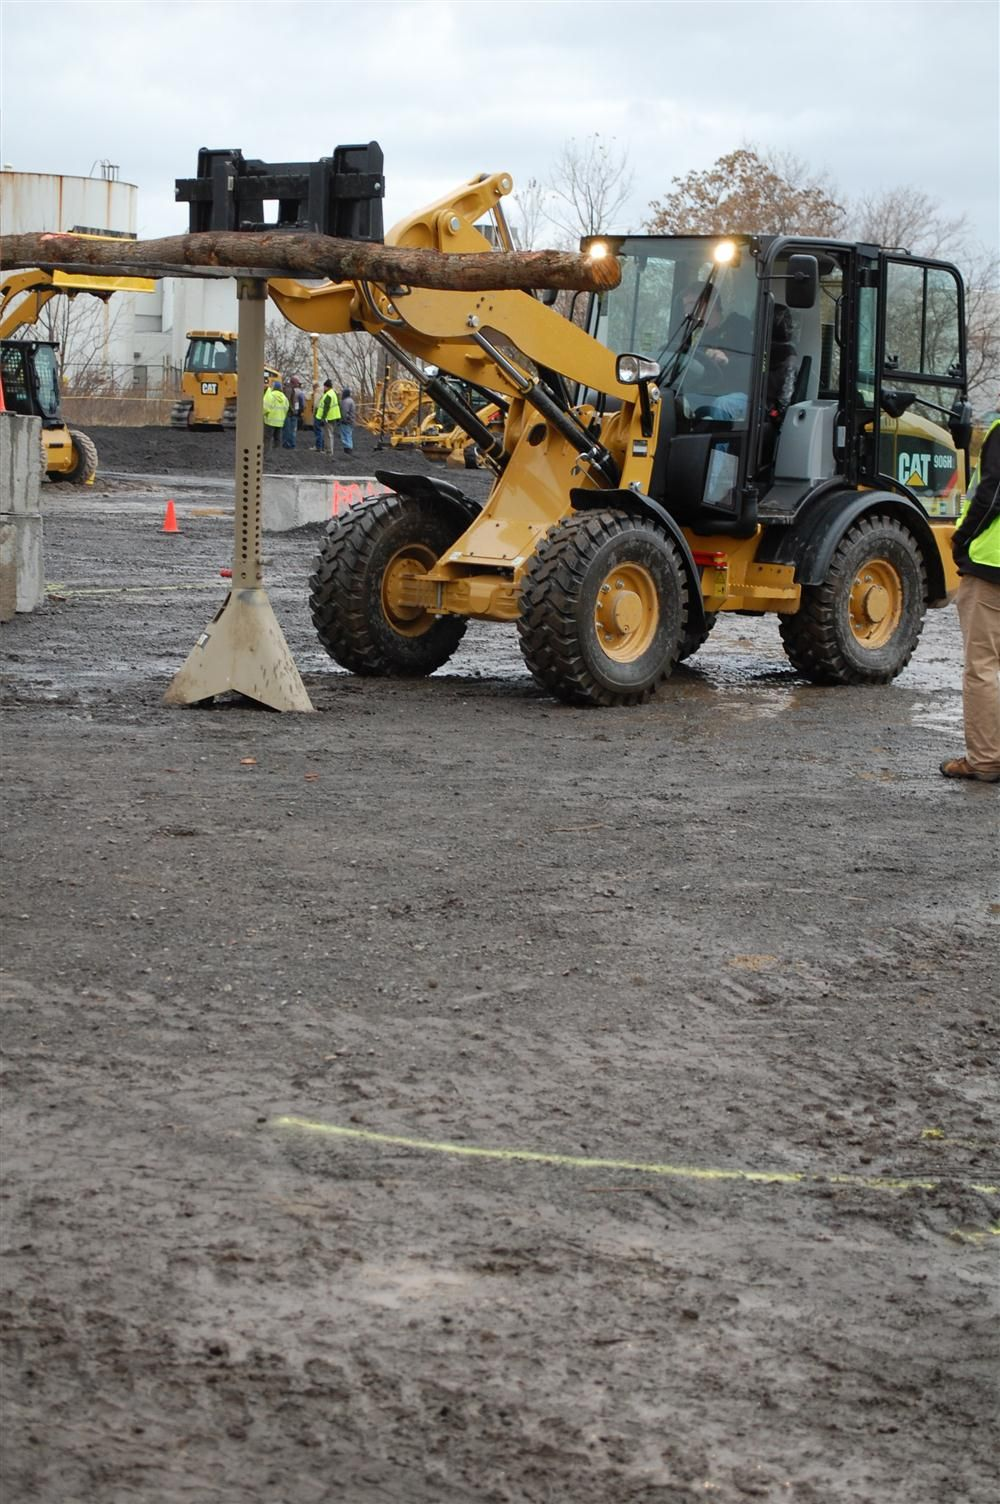 A complex obstacle course was set up to challenge the skills of any operator up to the test.